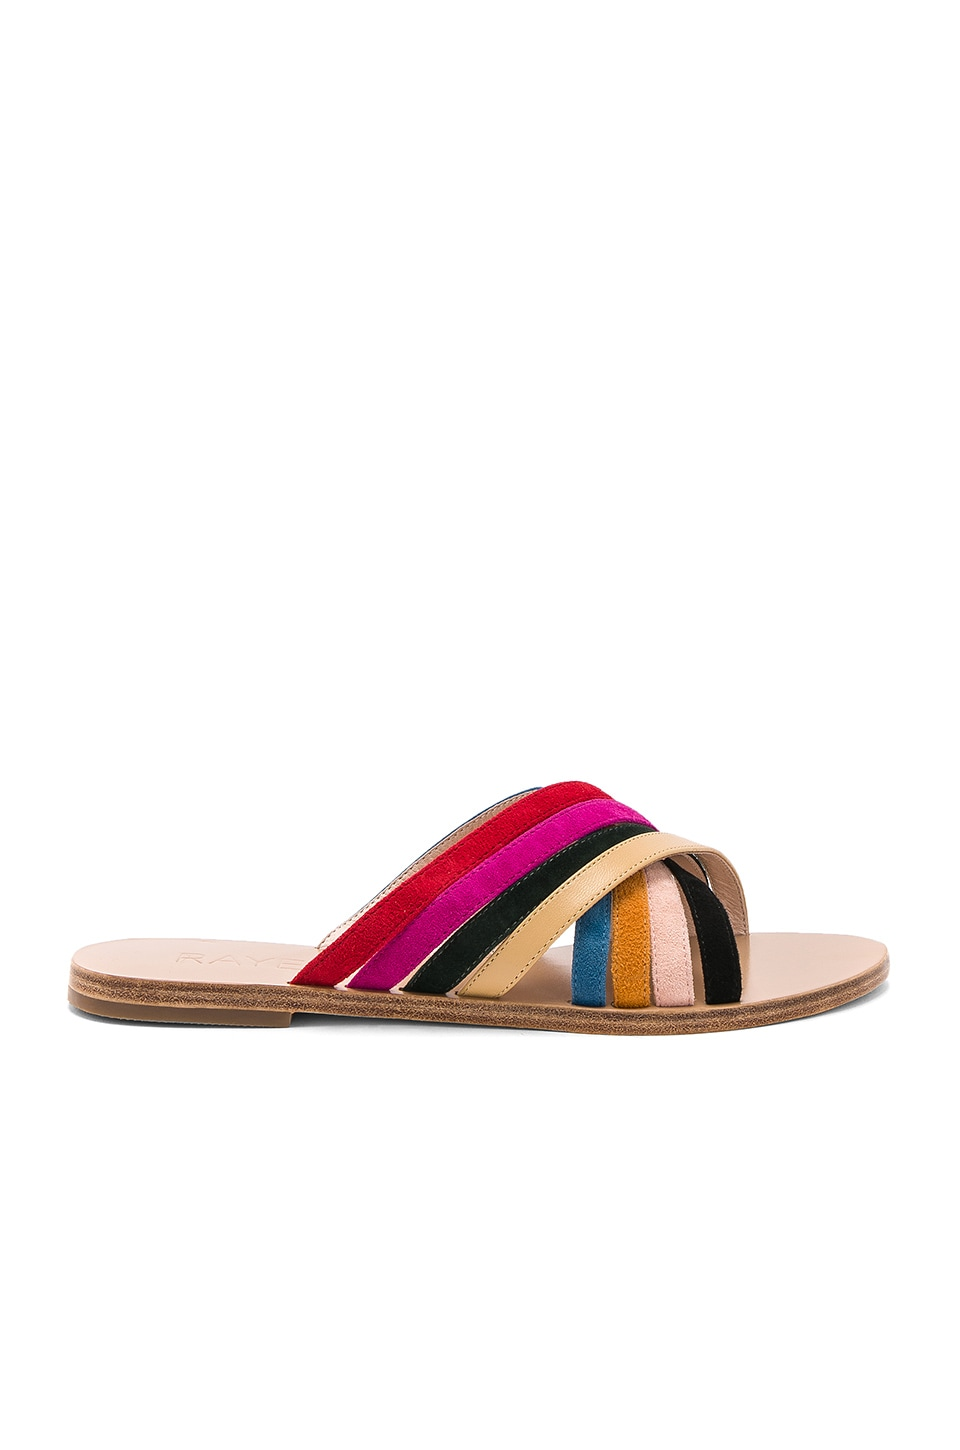 RAYE Silvie Sandal in Rainbow Multi